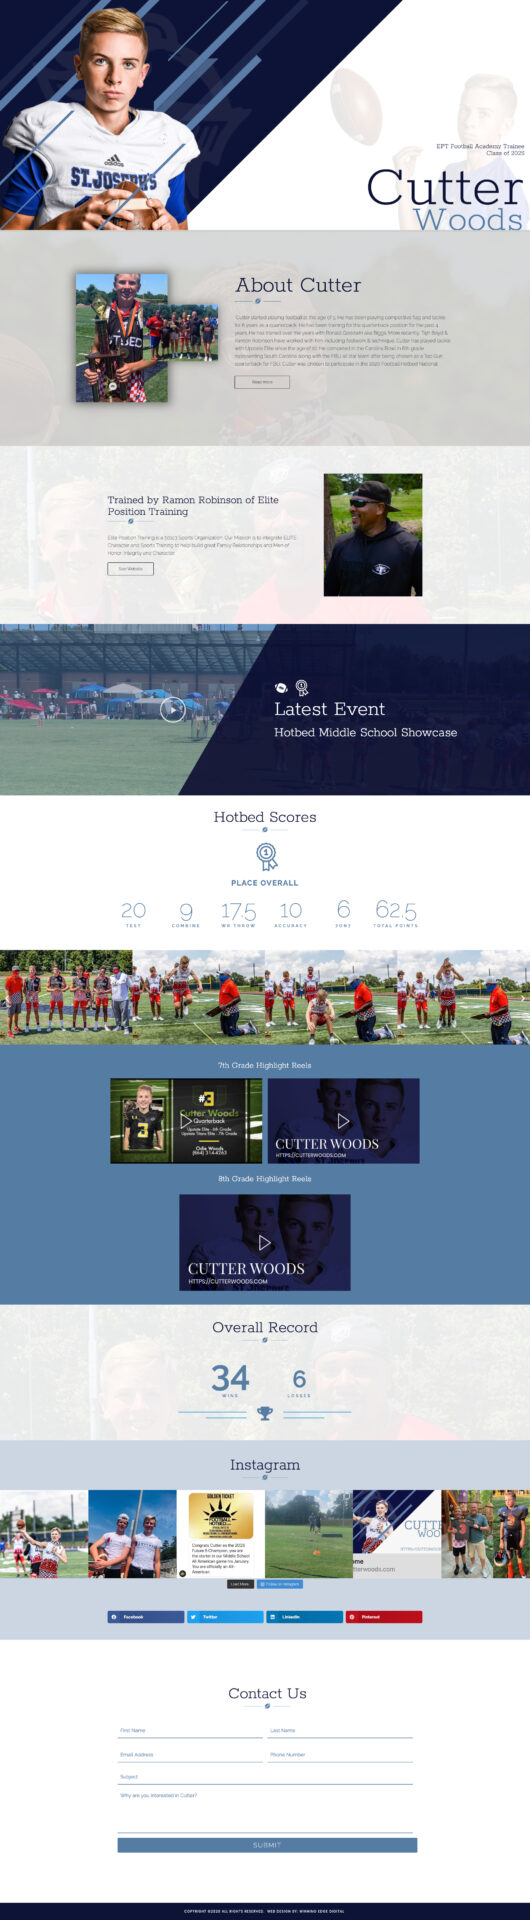 Player Personalized Website